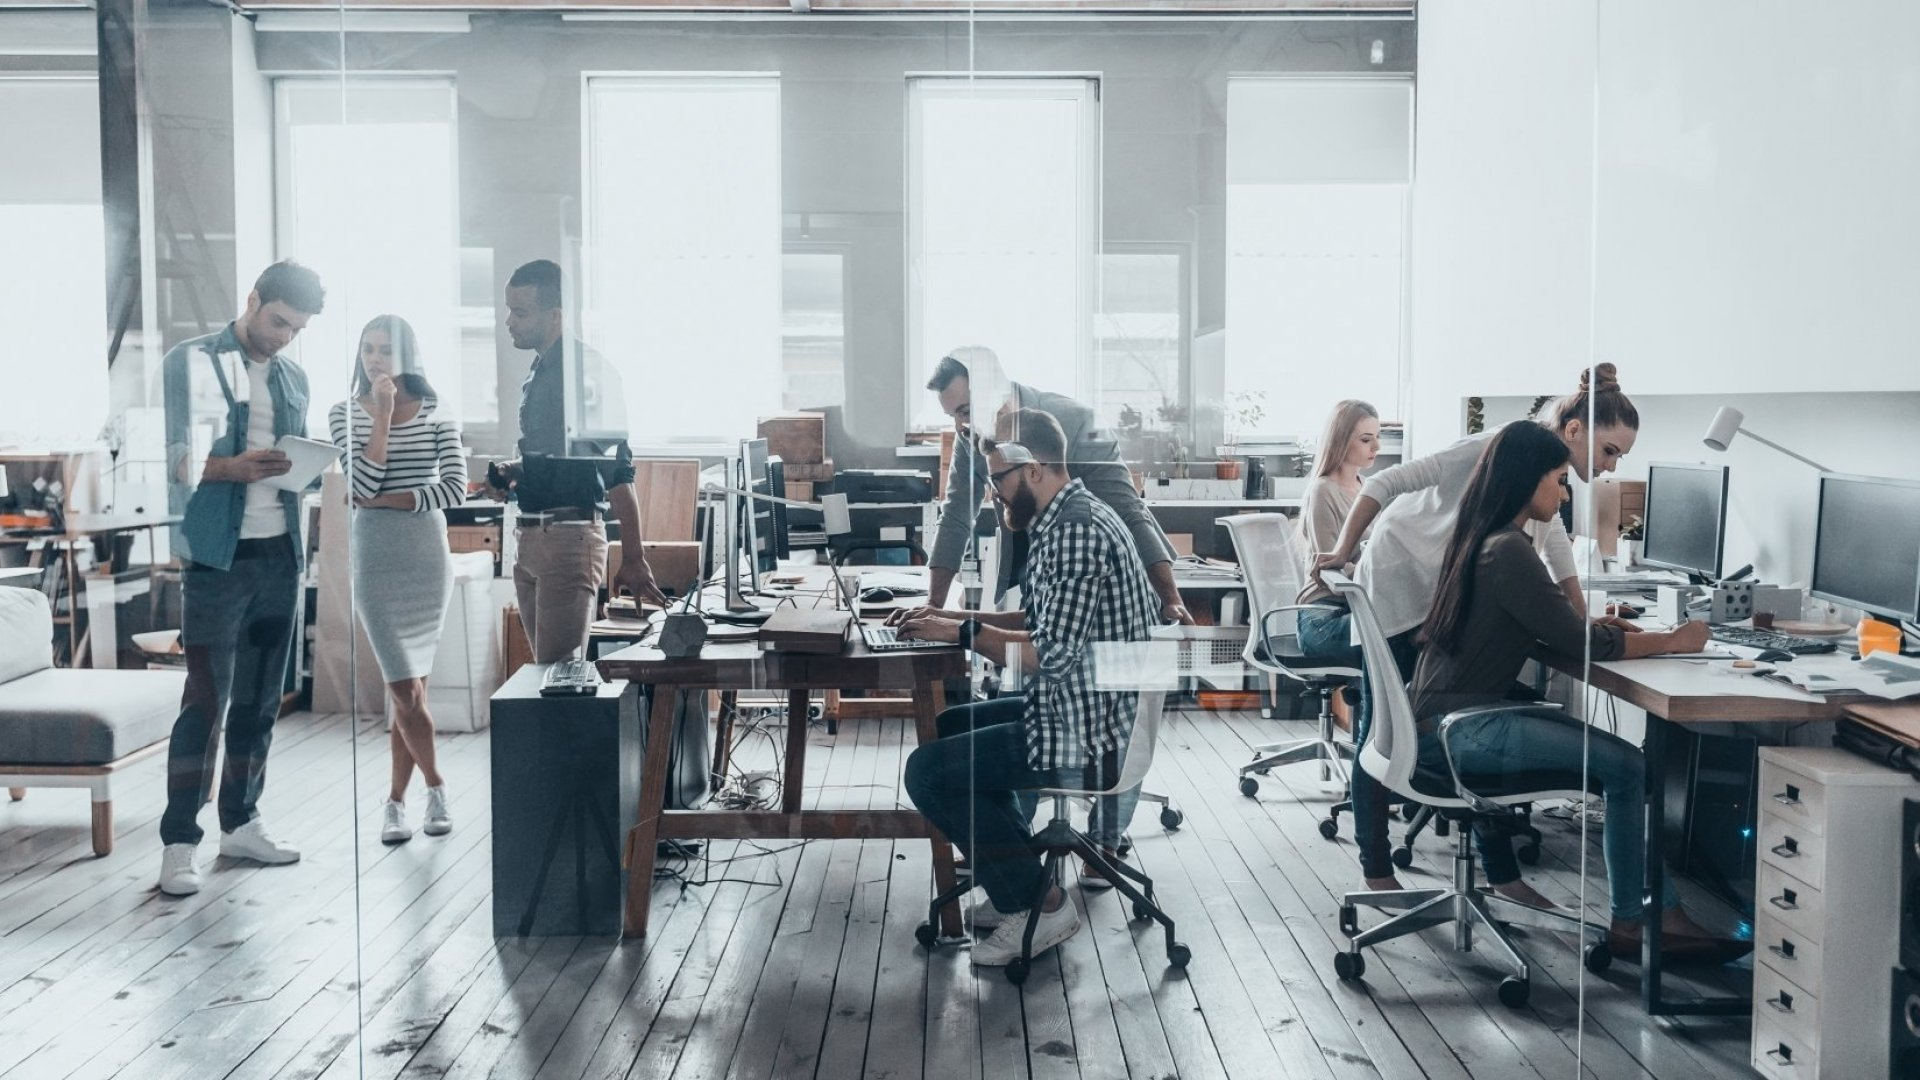 Your Open Office Design Might Be Hindering Productivity. Here's How to Fix It